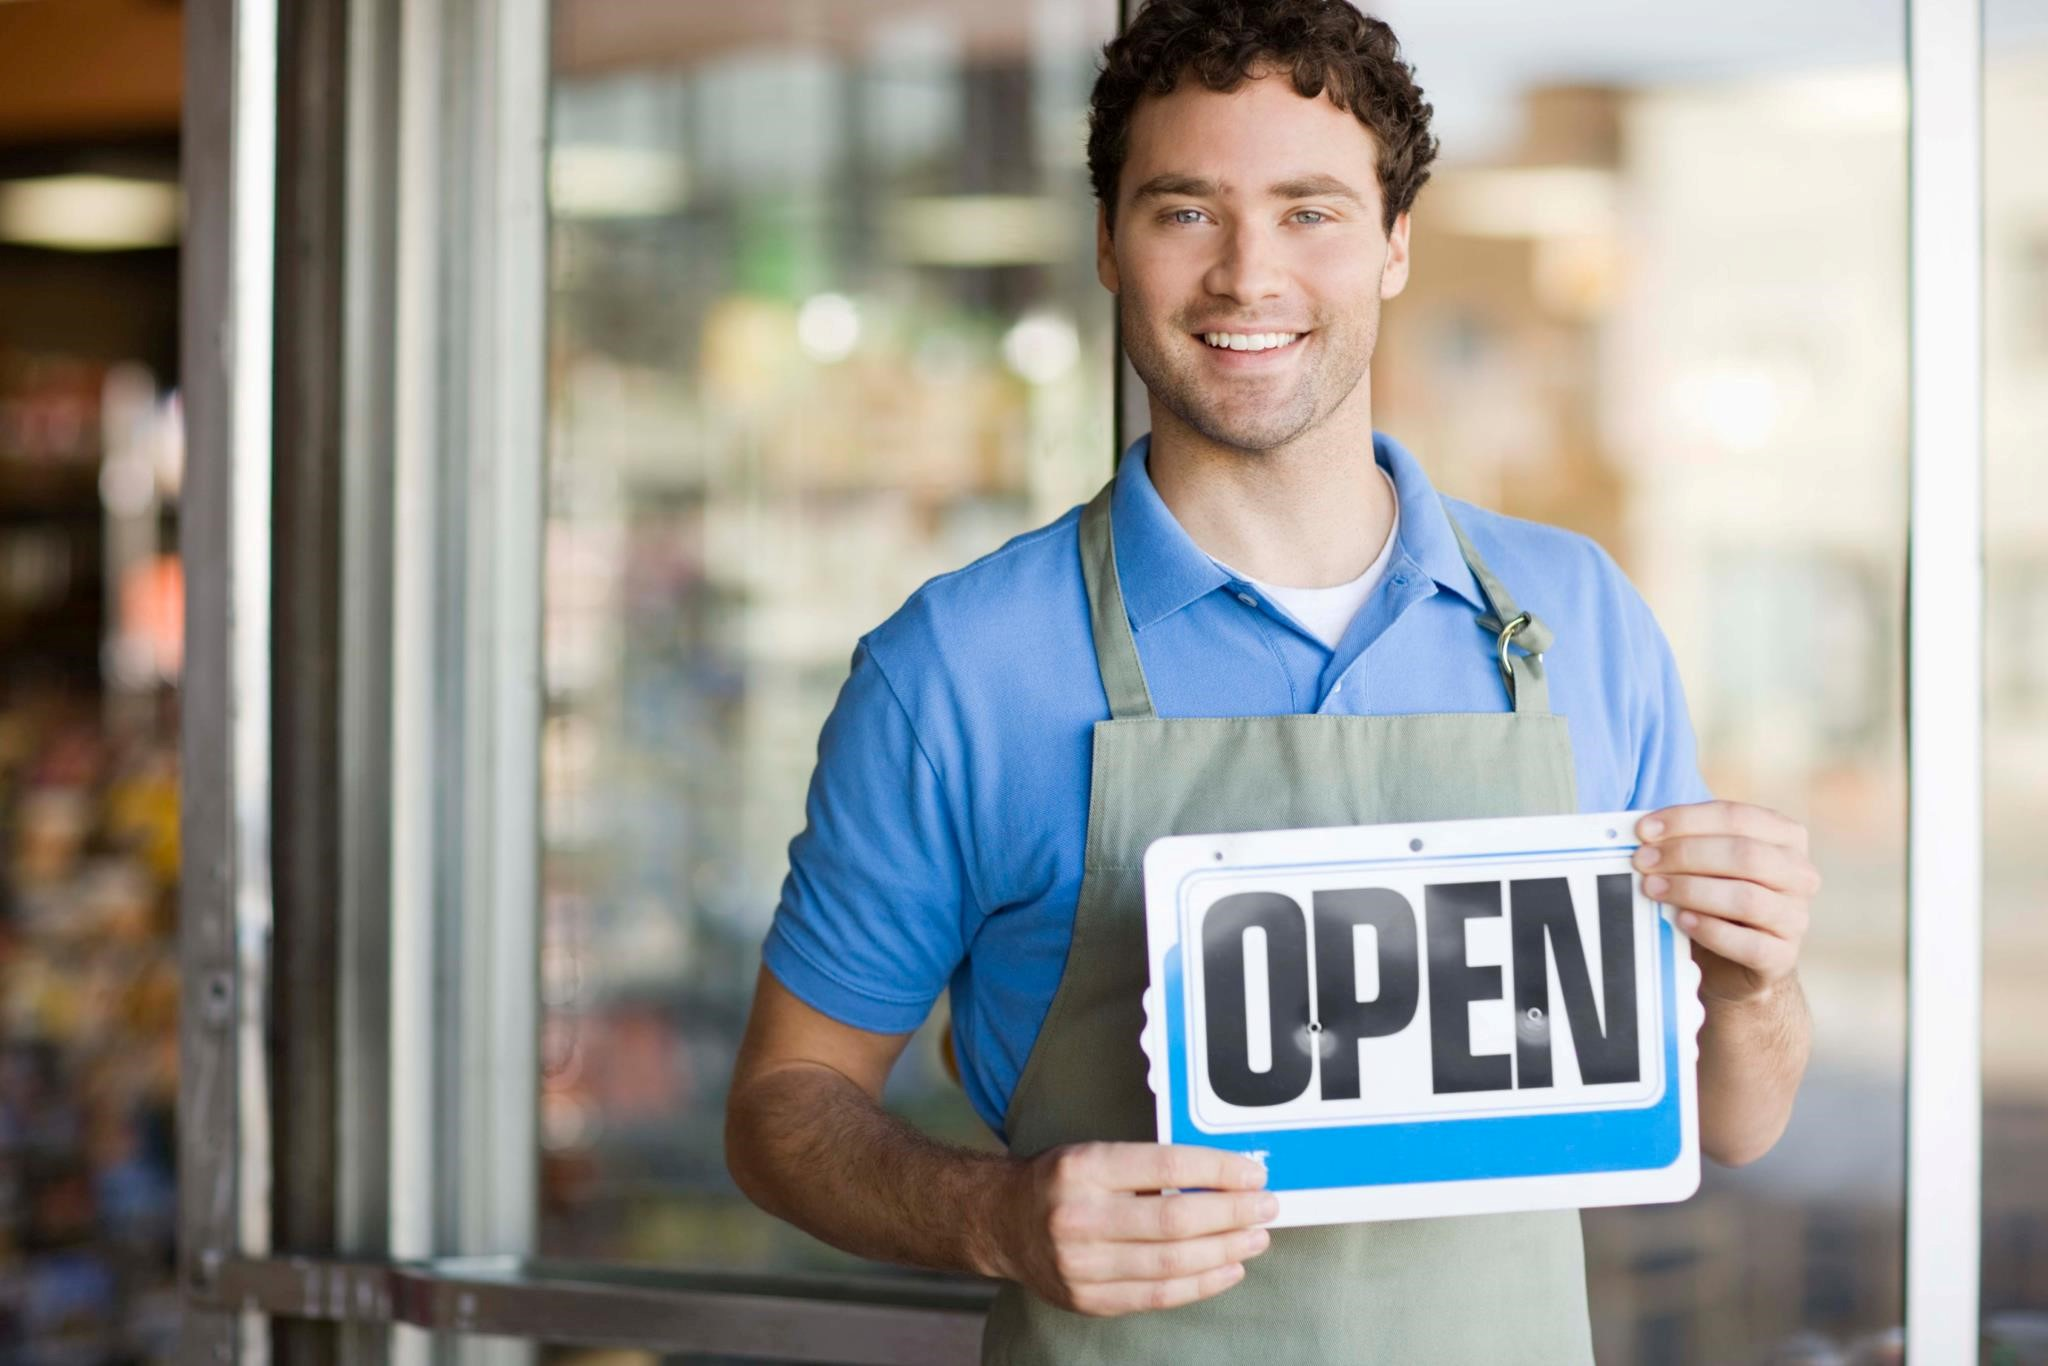 Cash flow advice for the small business owner